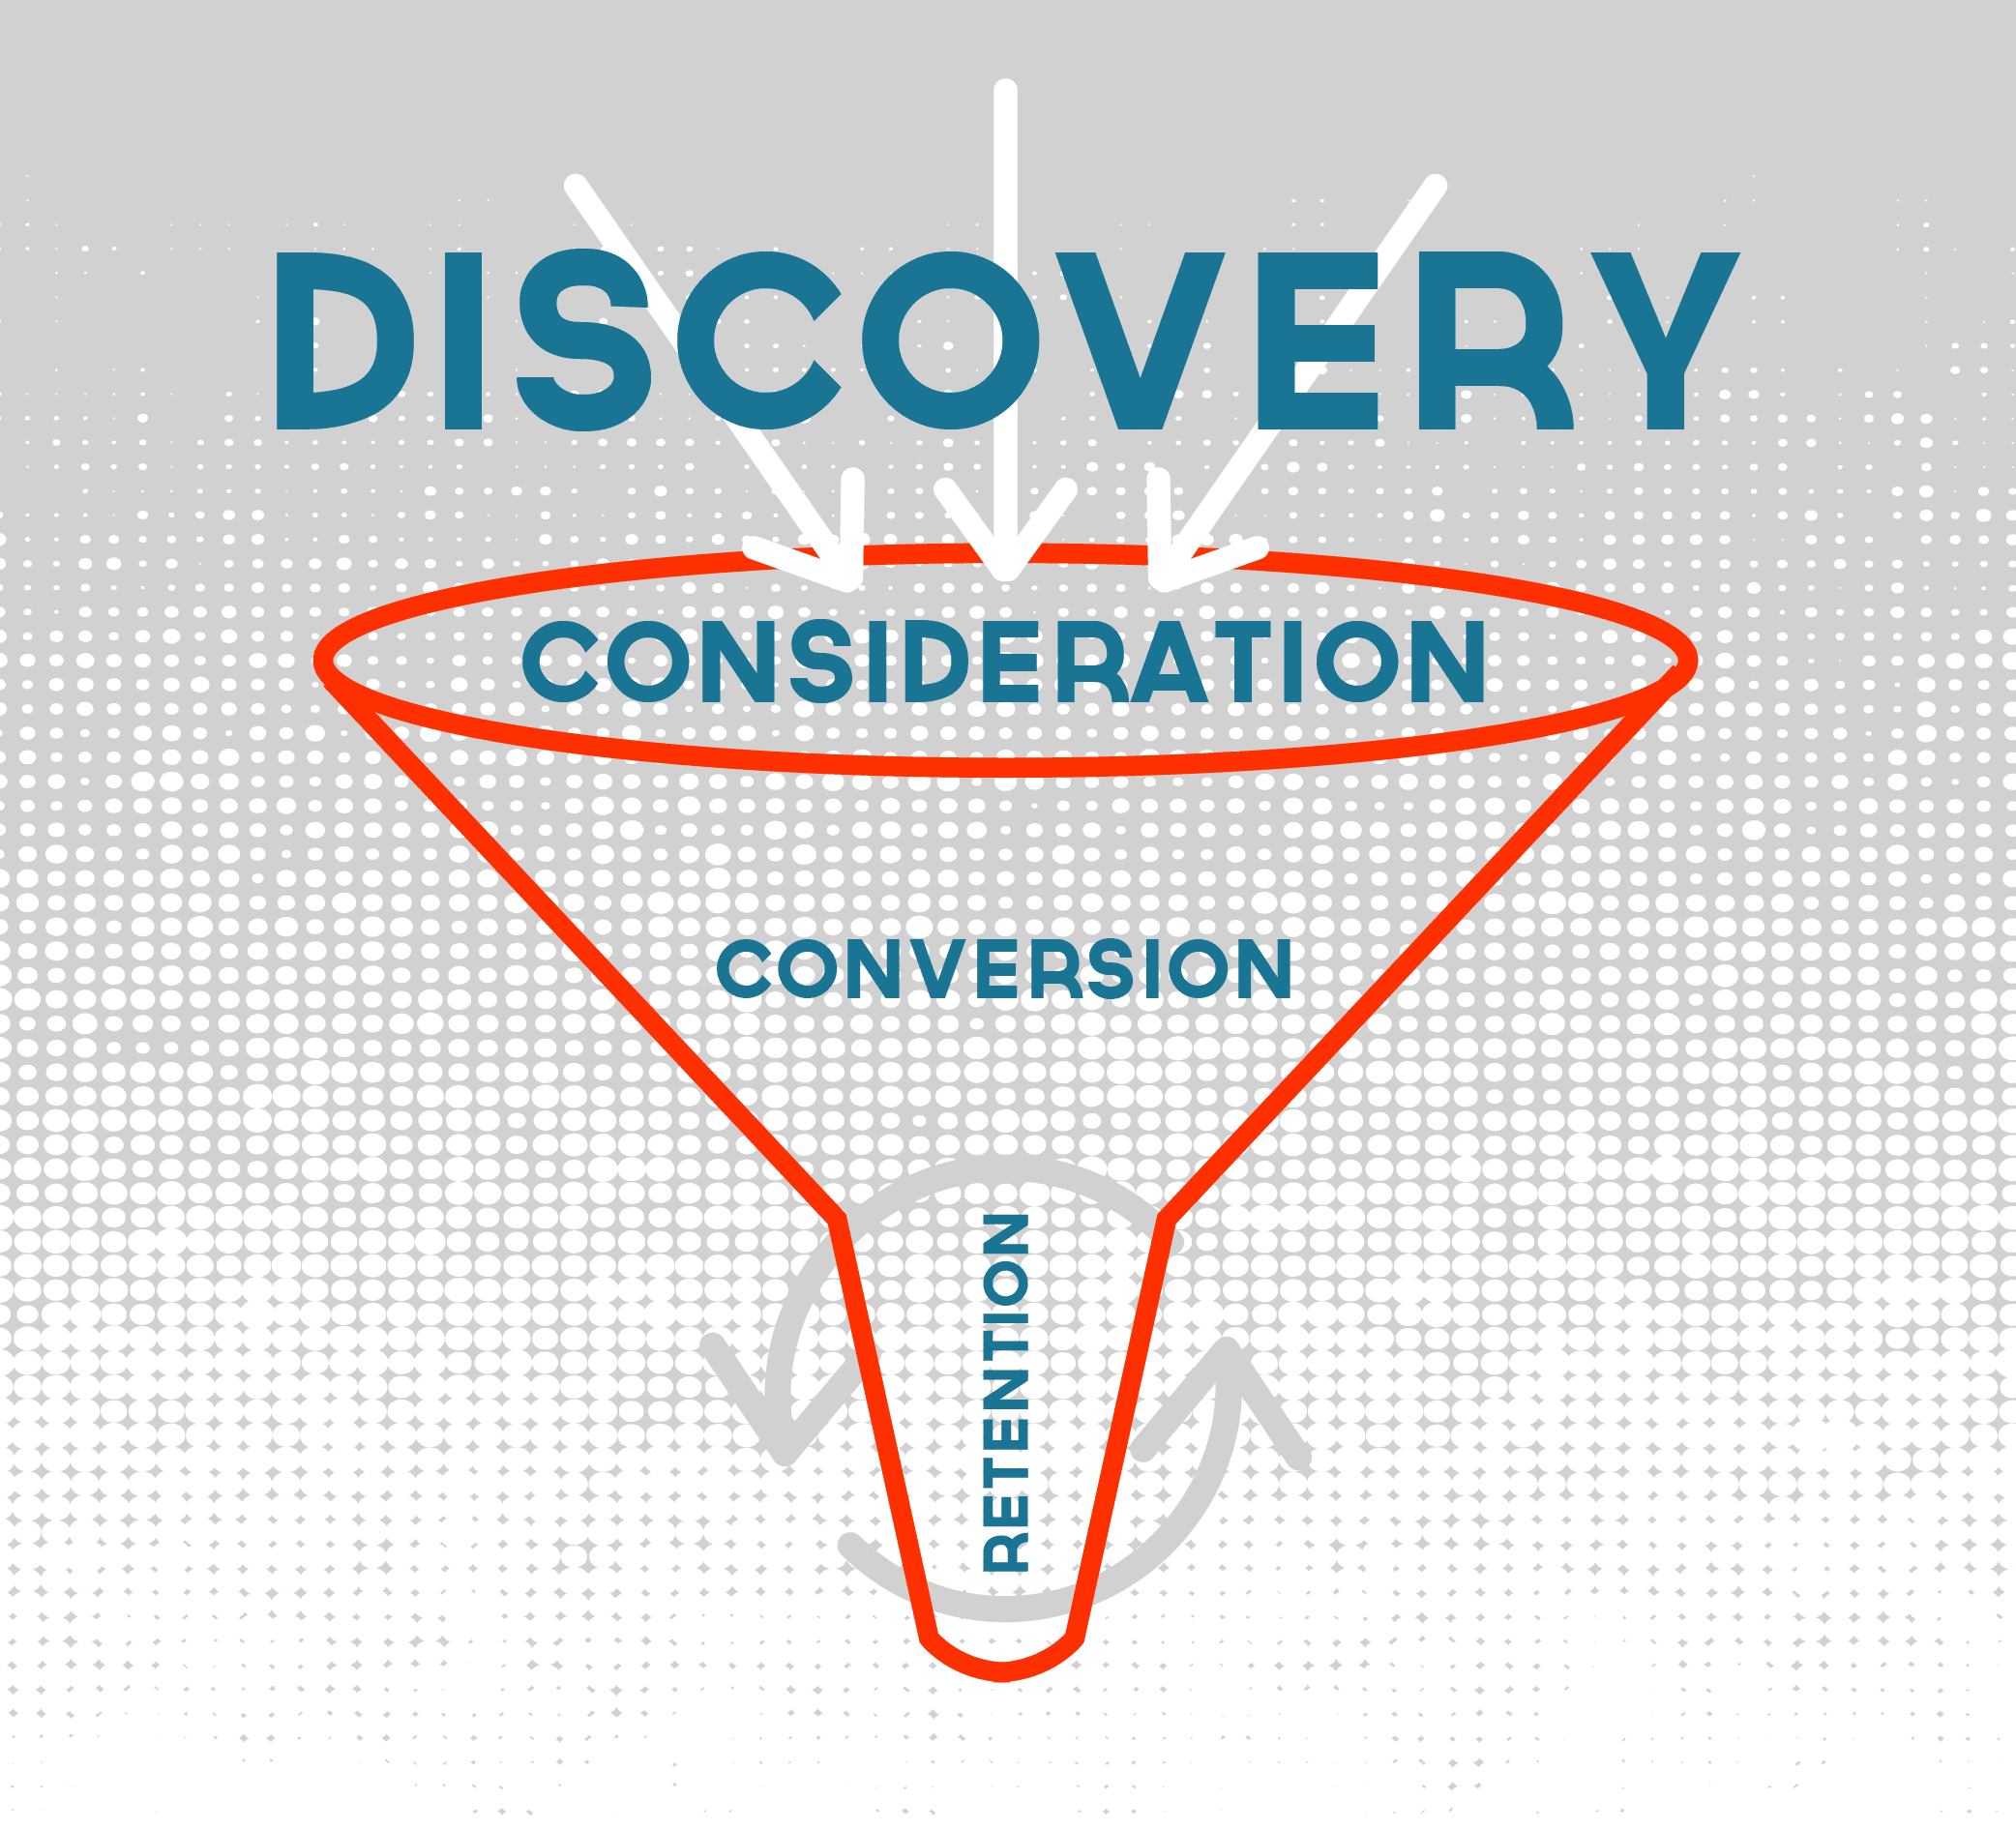 Illustration depicting the customer funnel for content marketing strategies.